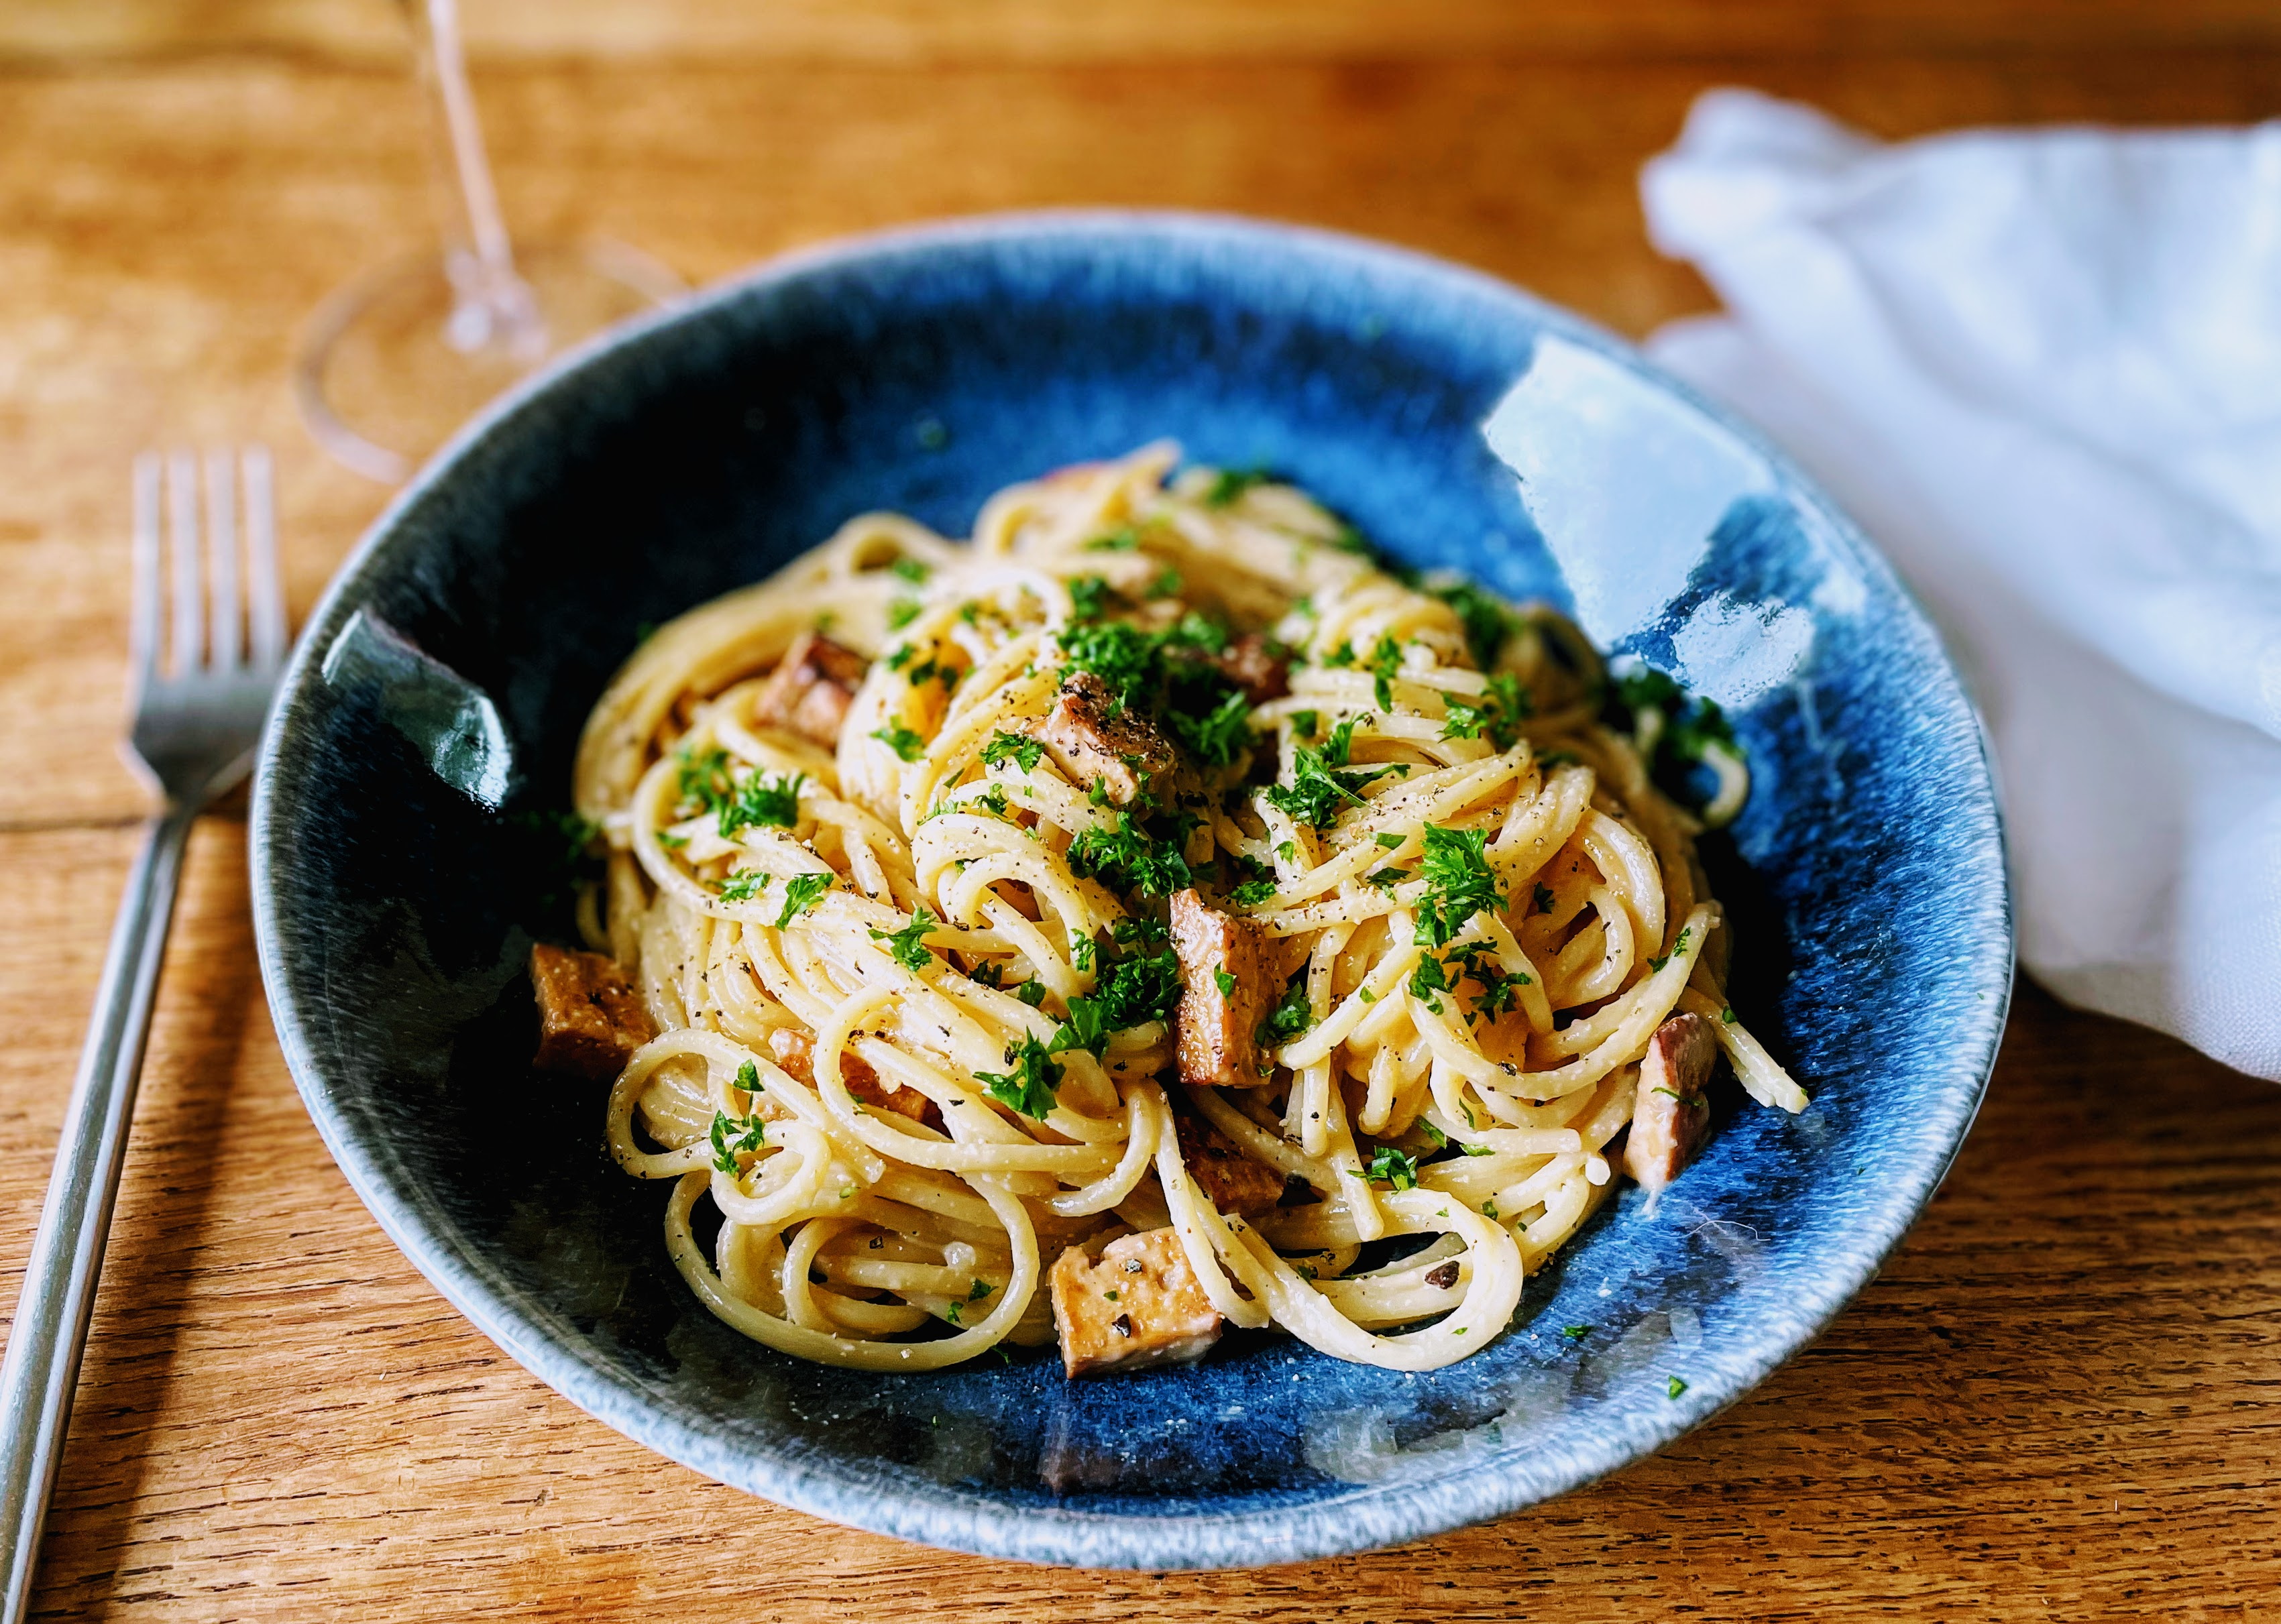 A dark blue shallow bowl piled with a tangle of creamy spaghetti, with little bits of crisp, marinated smoked tofu. There's a sprinkling of chopped fresh parsley on top.